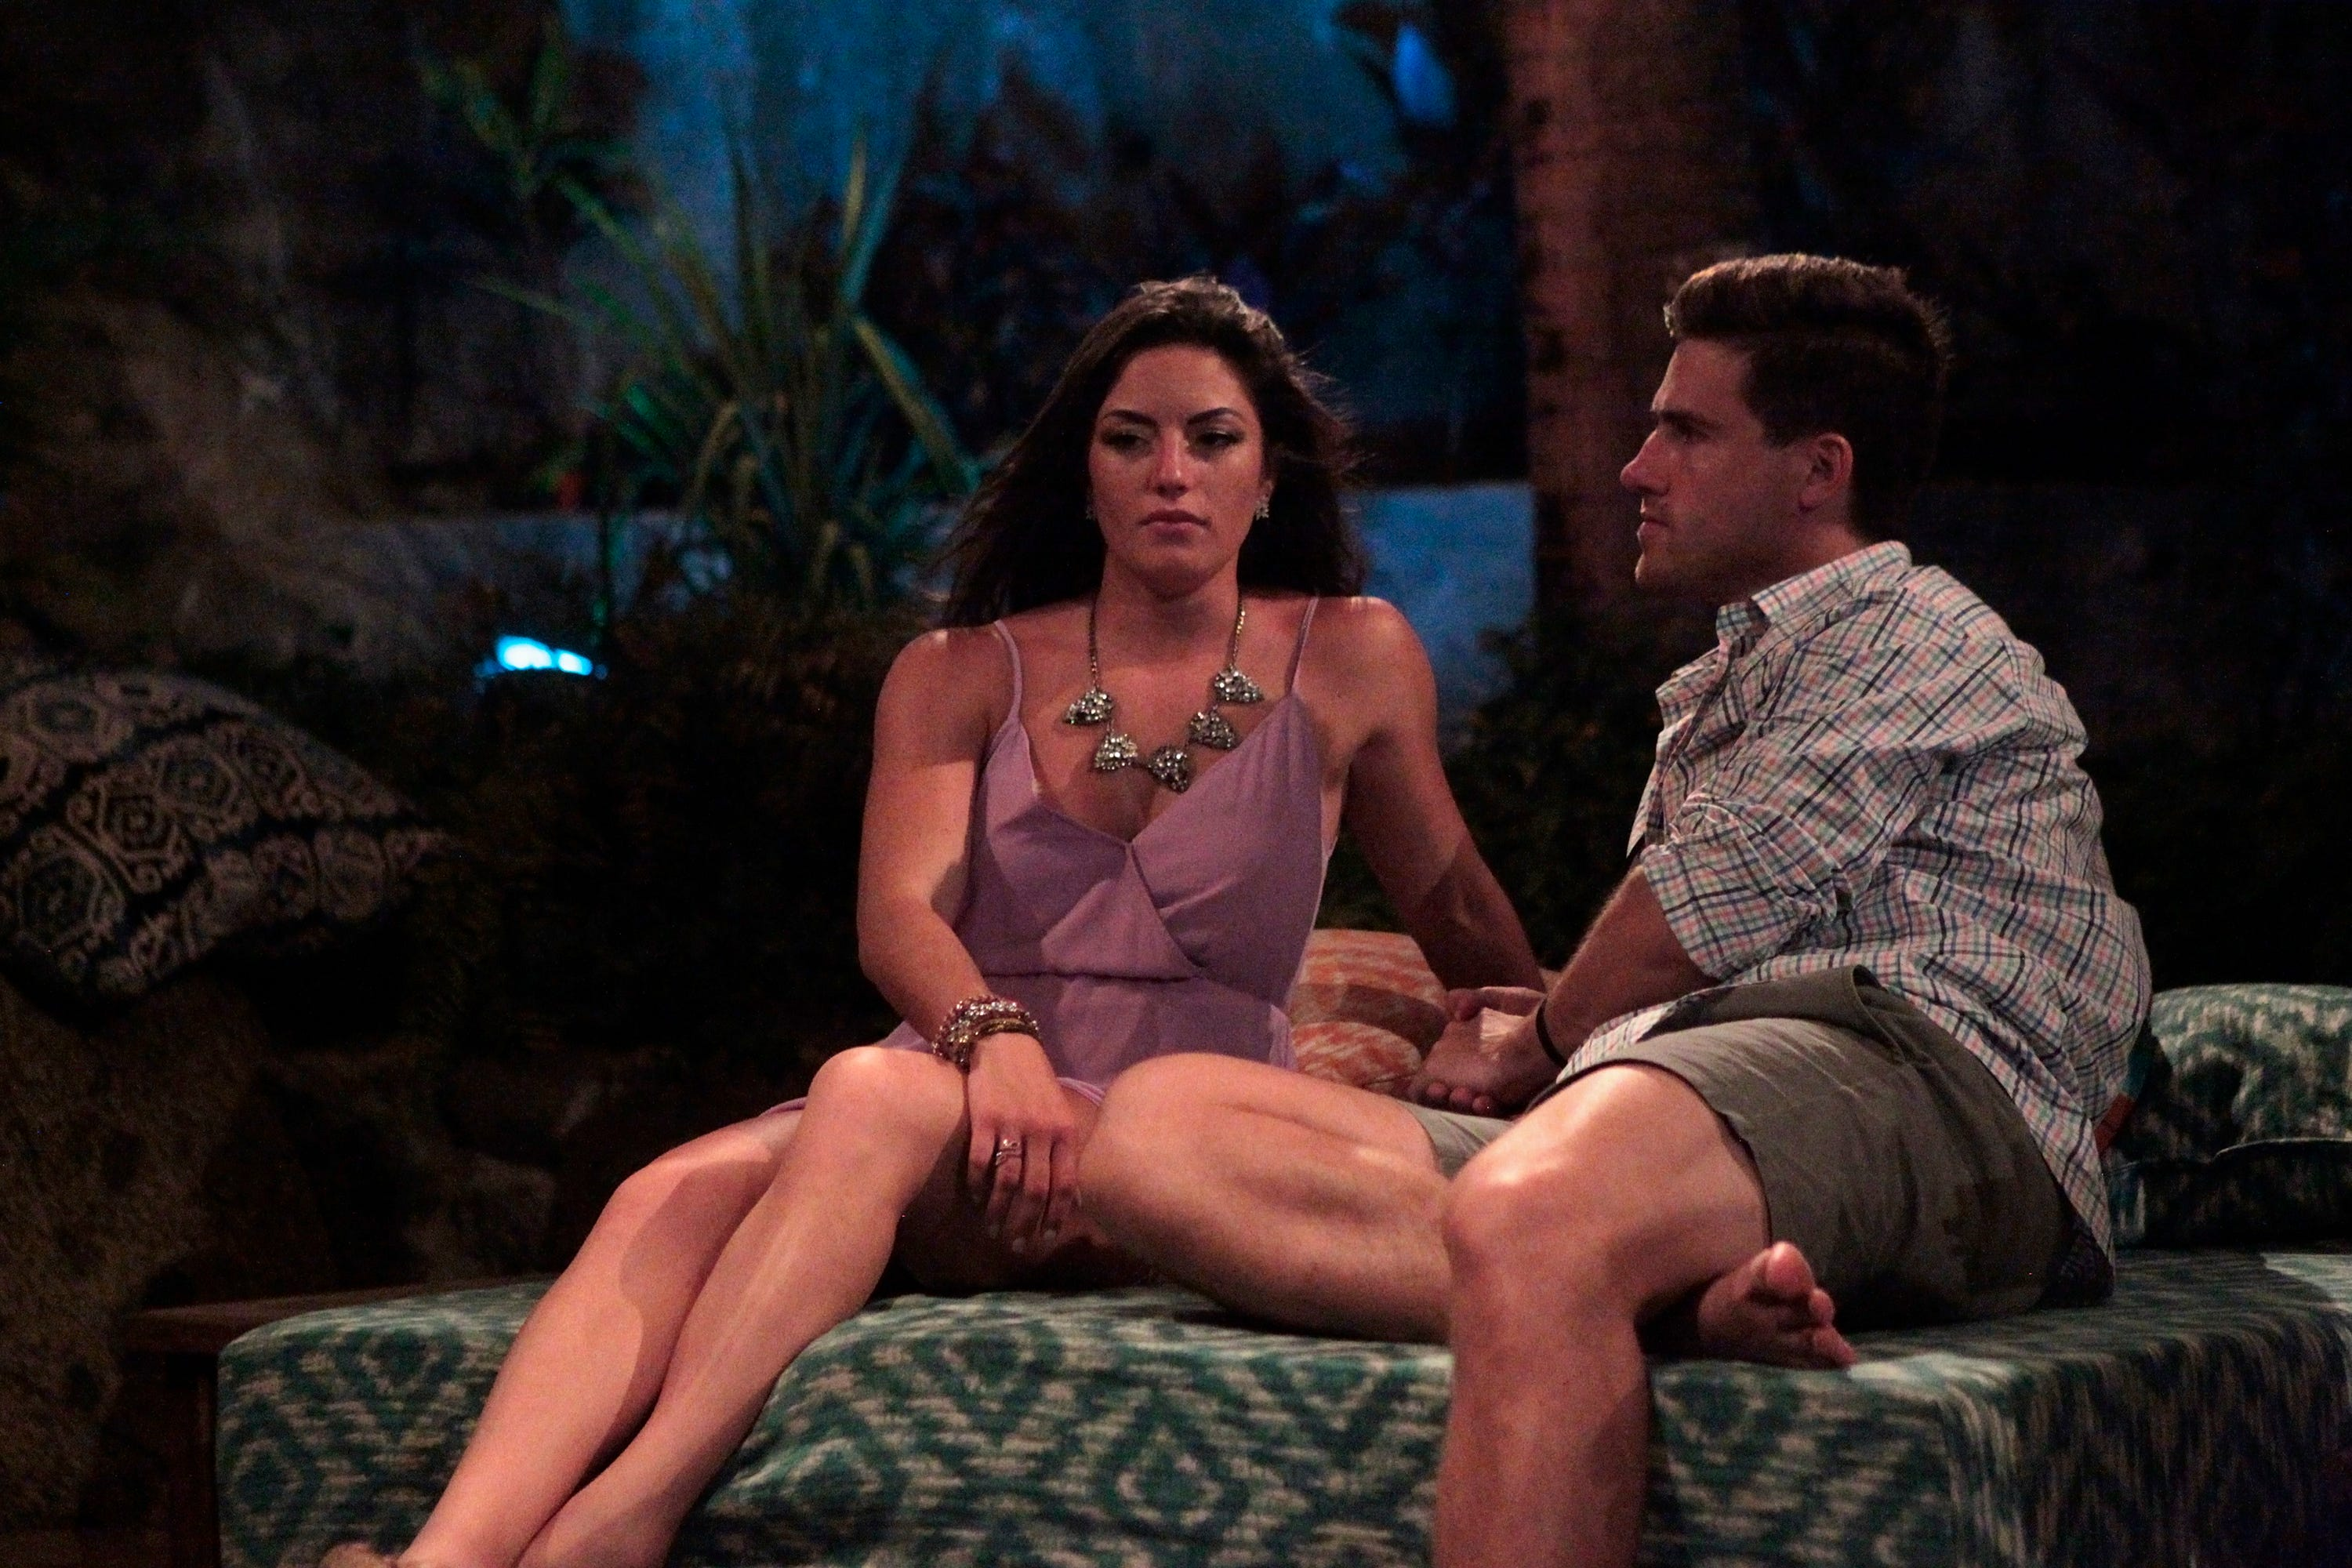 'Bachelor in Paradise' filming canceled amid allegations of misconduct